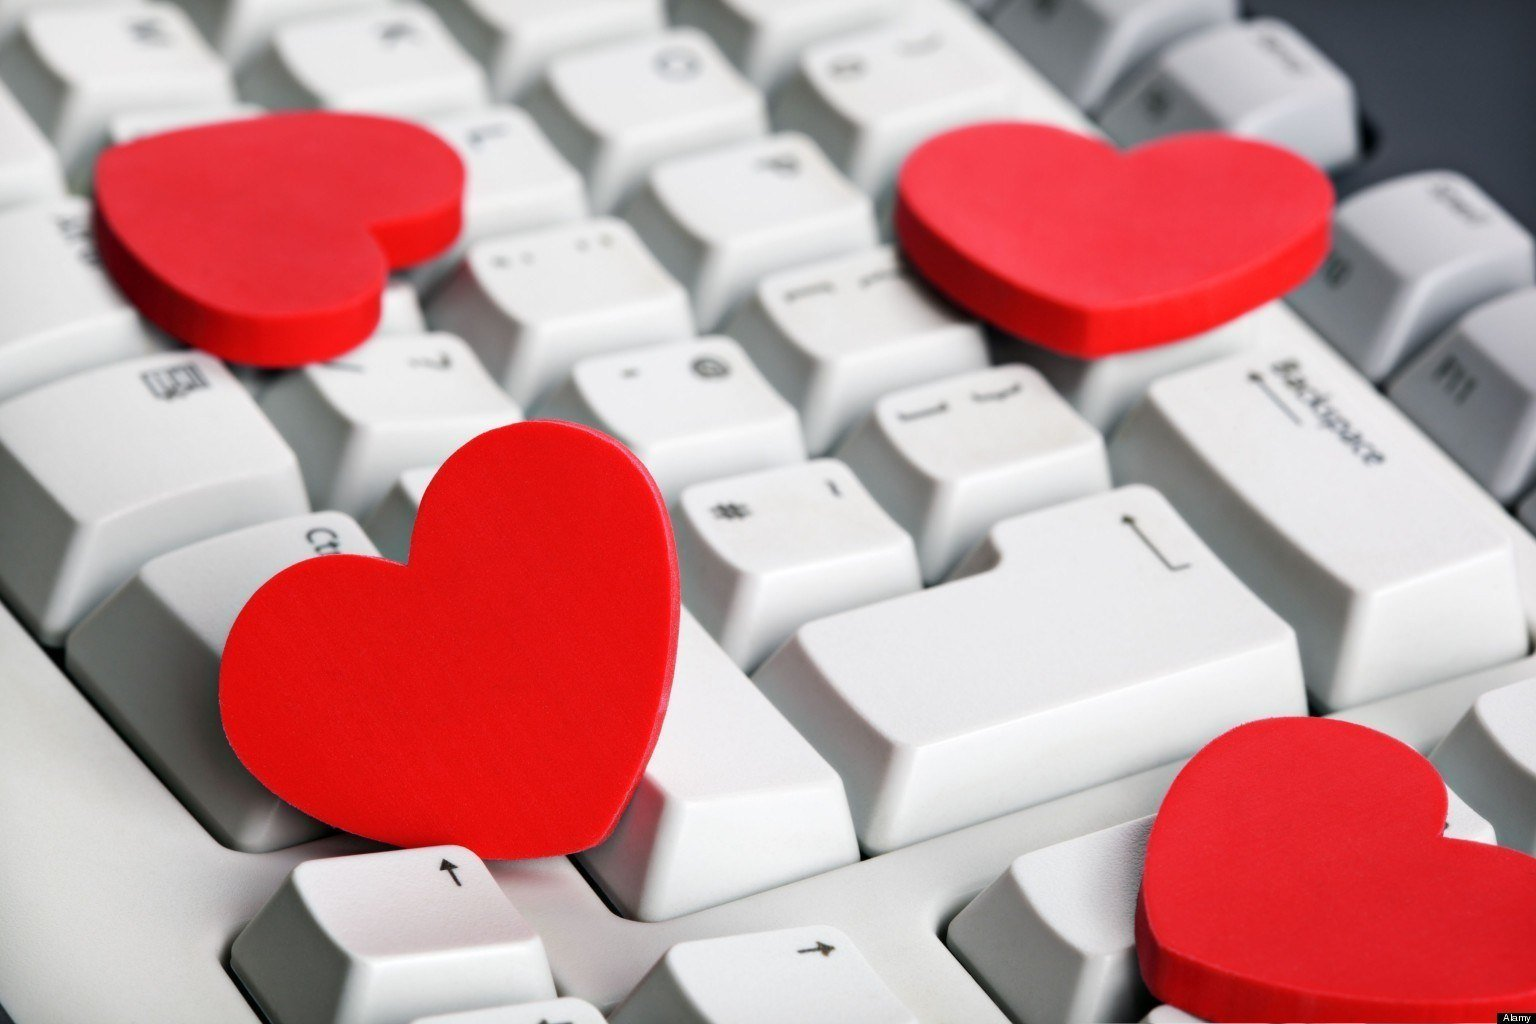 What You Should Know About Online Dating & Identity Theft